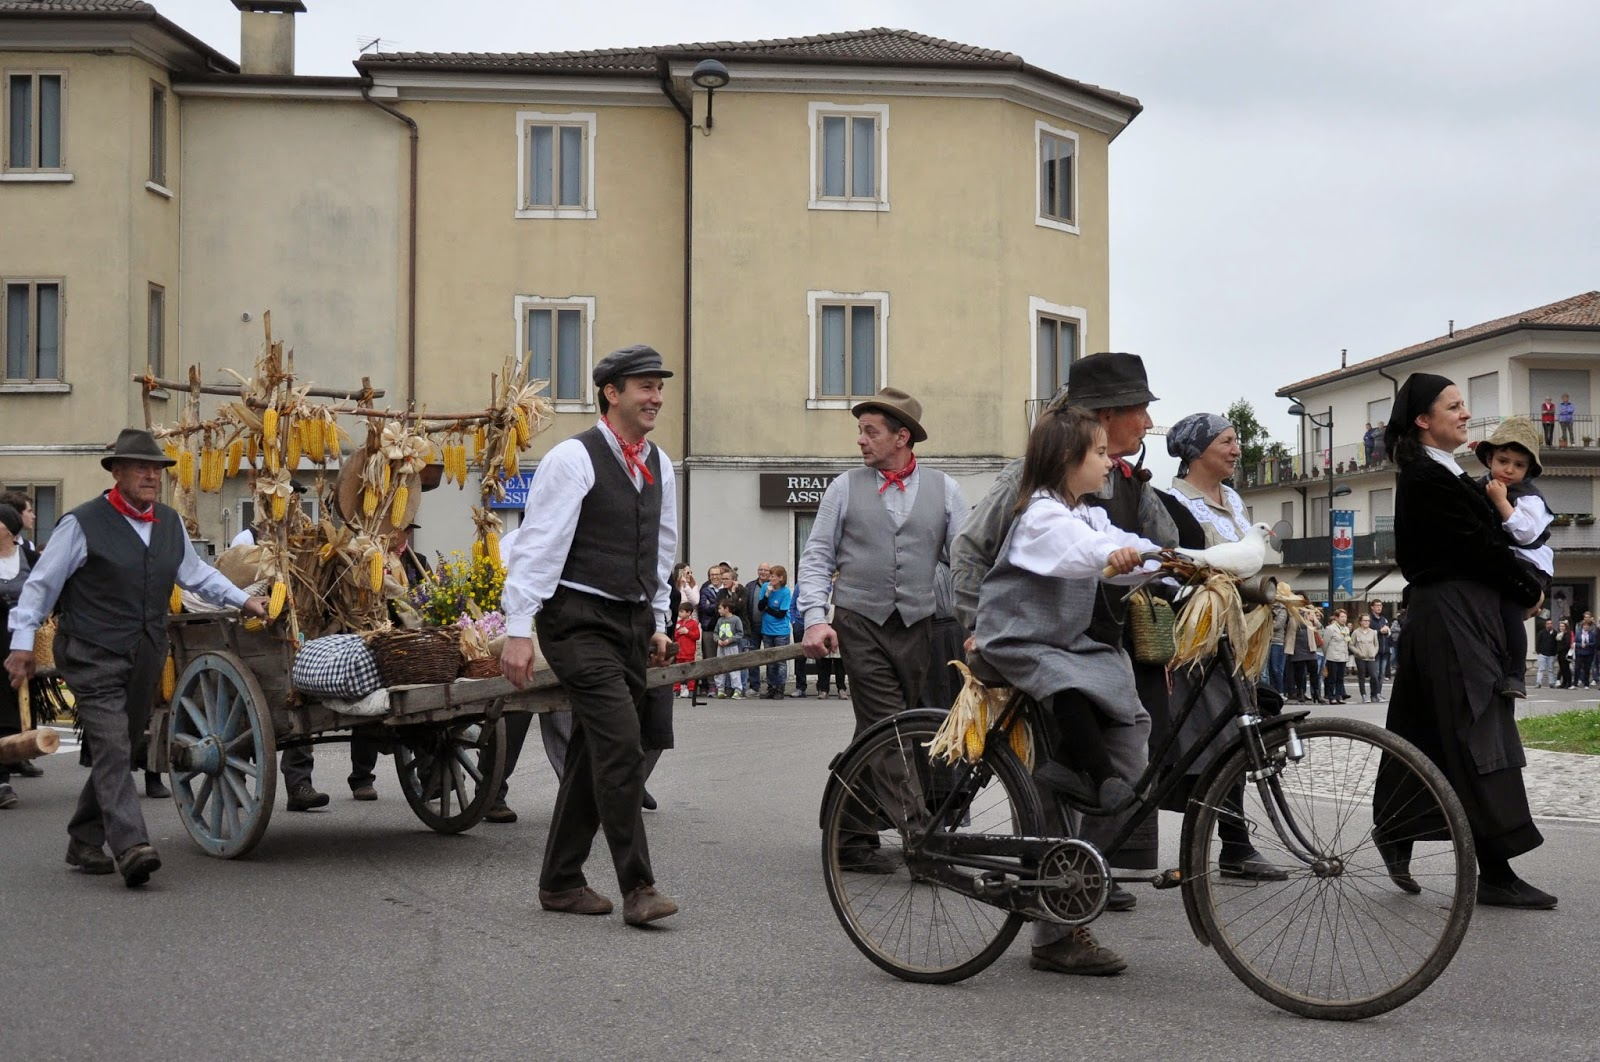 The white dove group at the Parade, Donkey Race, Romano d'Ezzelino, Veneto, Italy-3